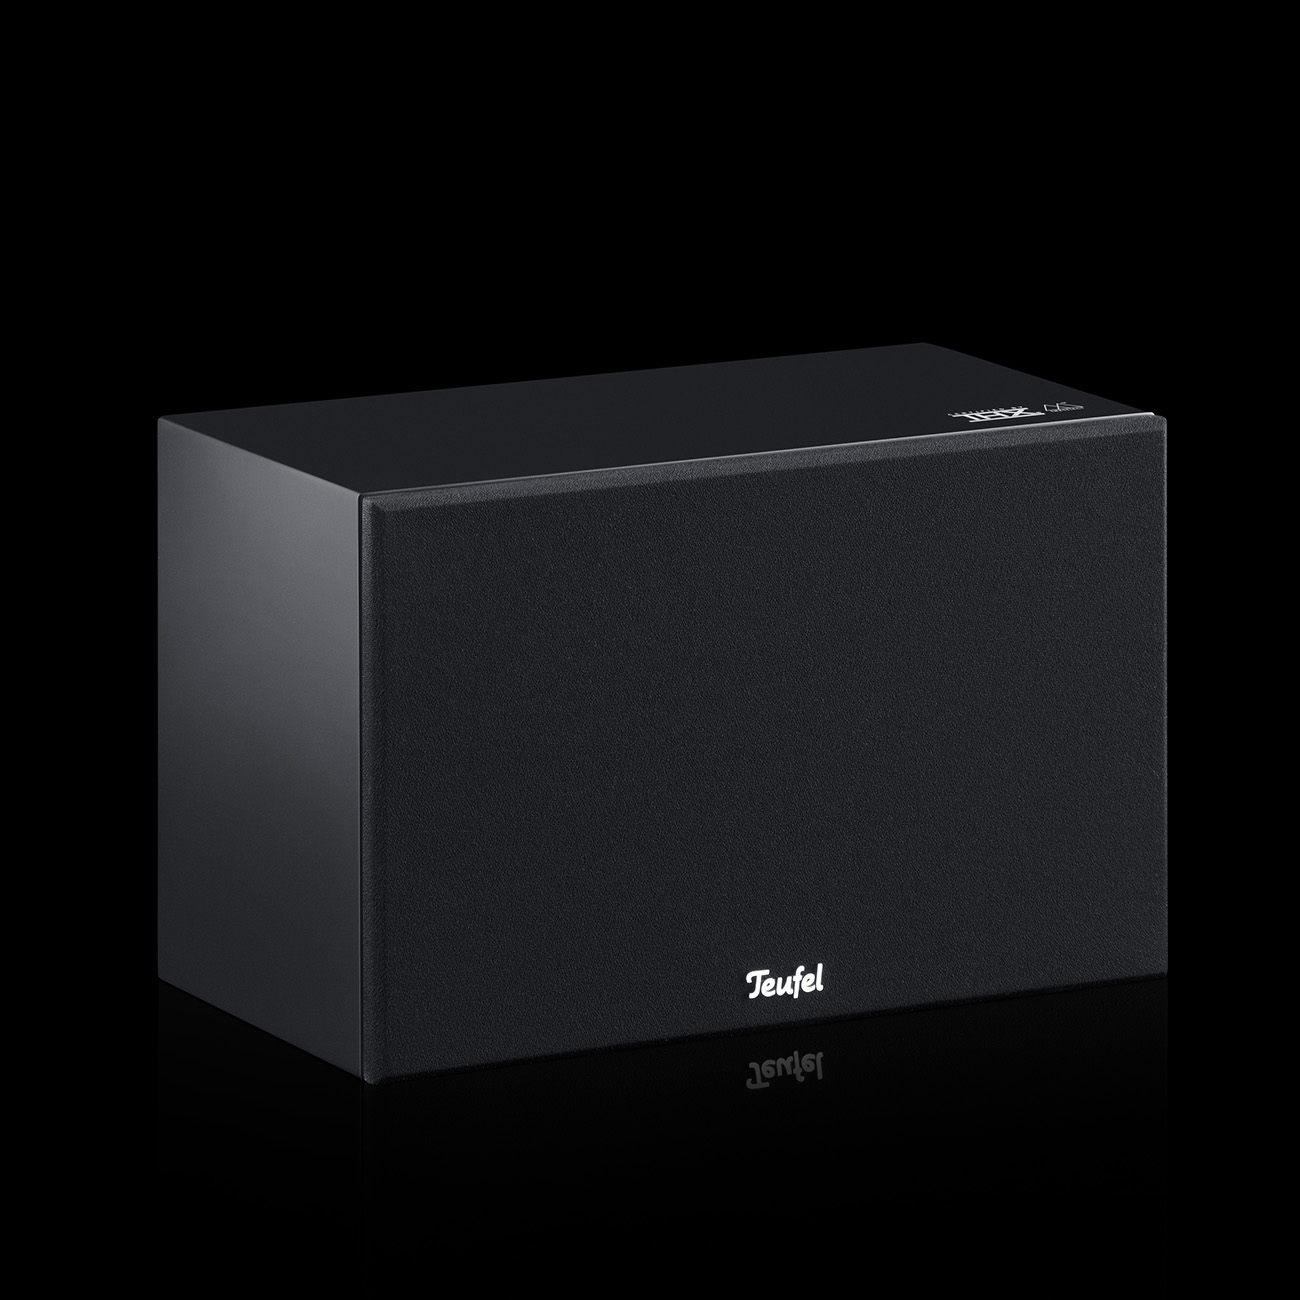 system-6-thx-select-fcr-front-angled-black-cover-on-black-1300x1300x72.jpg